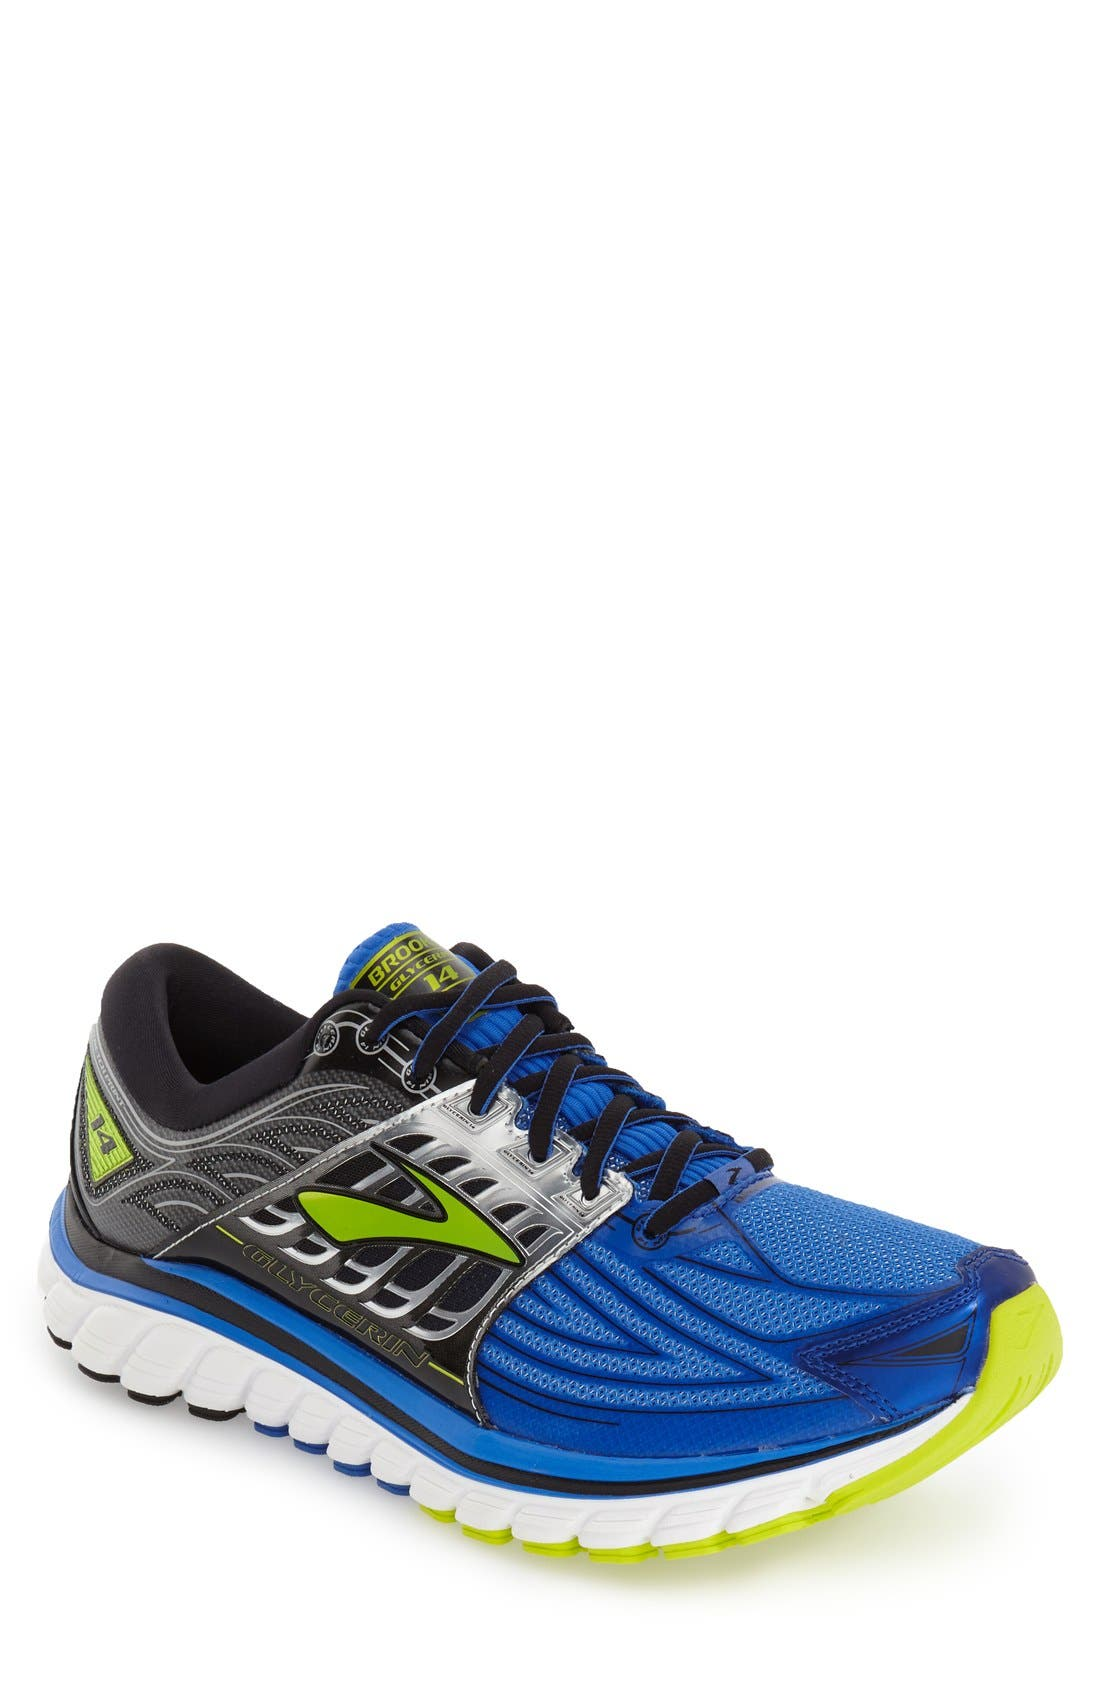 'Glycerin 14' Running Shoe,                             Main thumbnail 1, color,                             Electric Blue/ Black/ Punch